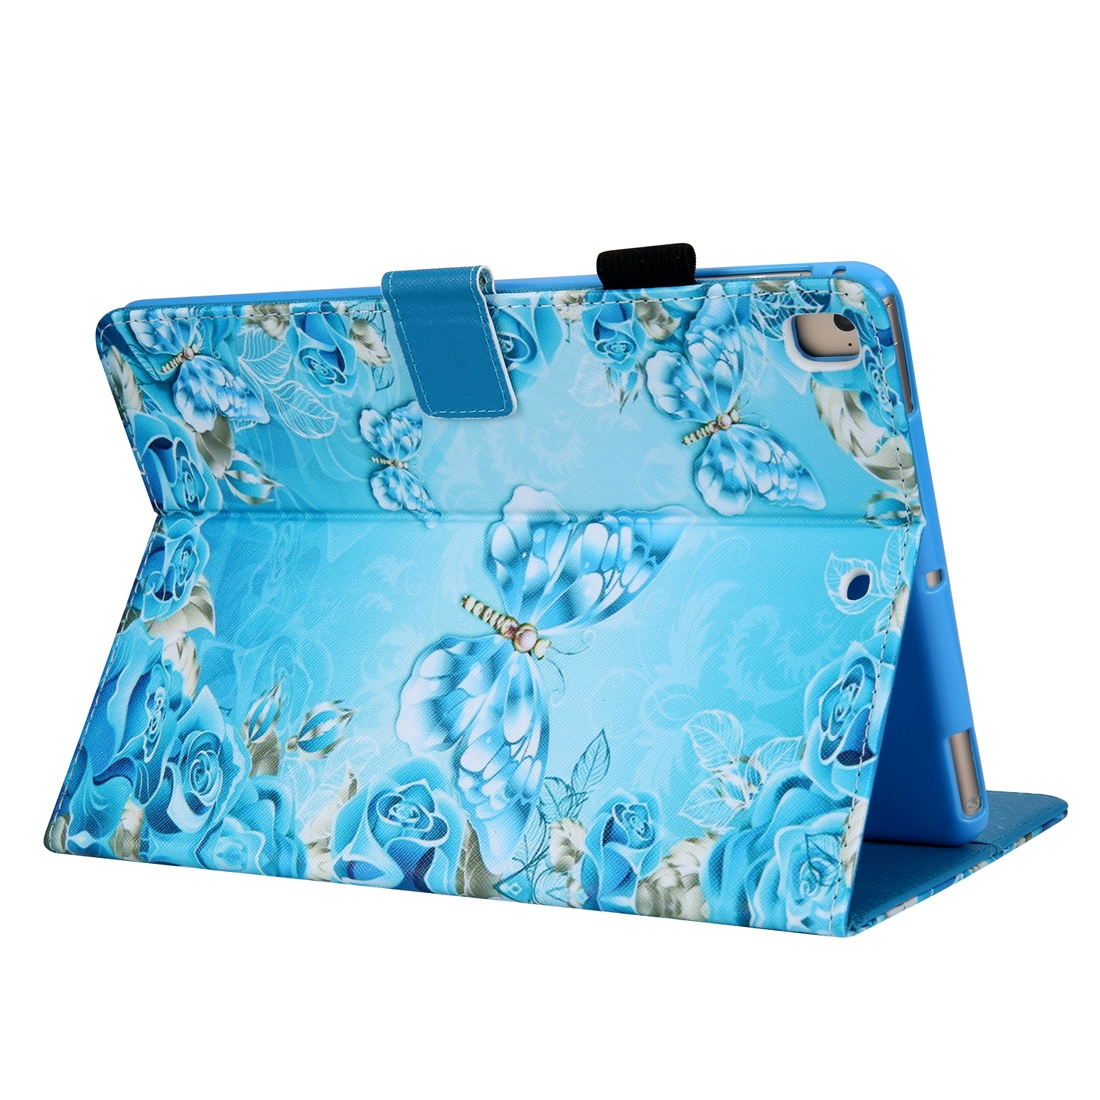 Crystal Butterfly Leather iPad Air Case/ Air 2/ iPad Pro 9.7 2016/ iPad 9.7 2017/ 9.7 2018